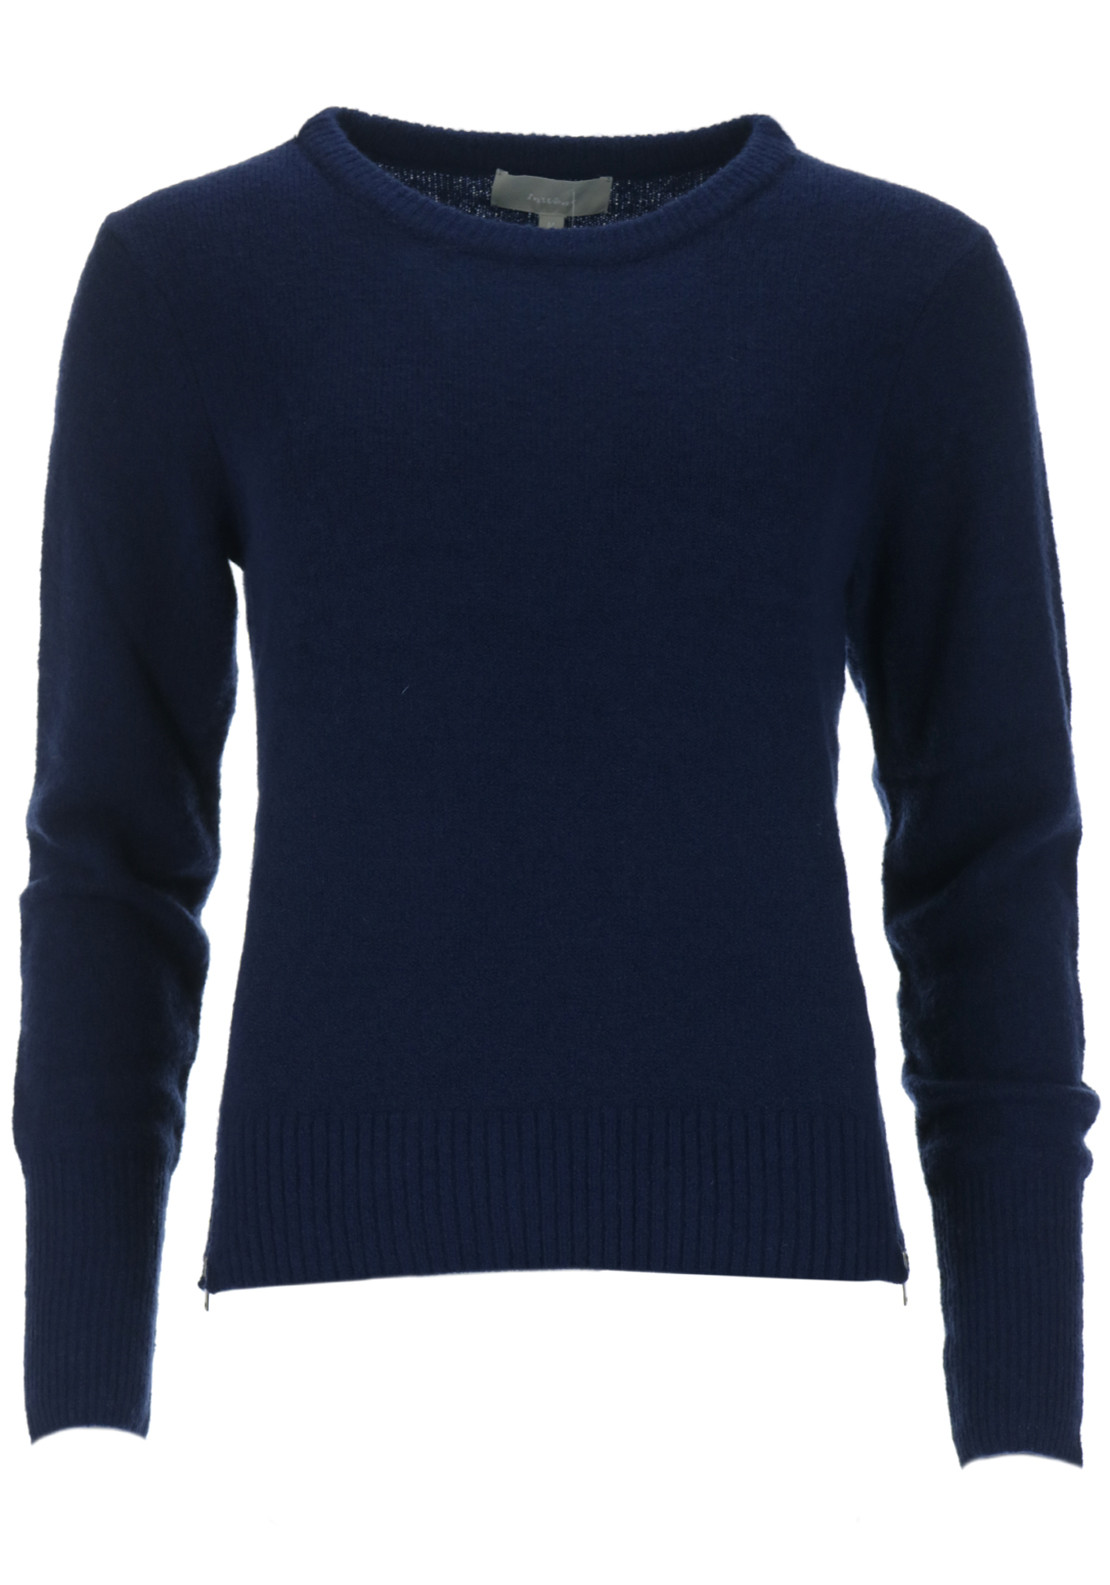 Inwear Tanular Pull Over, Navy